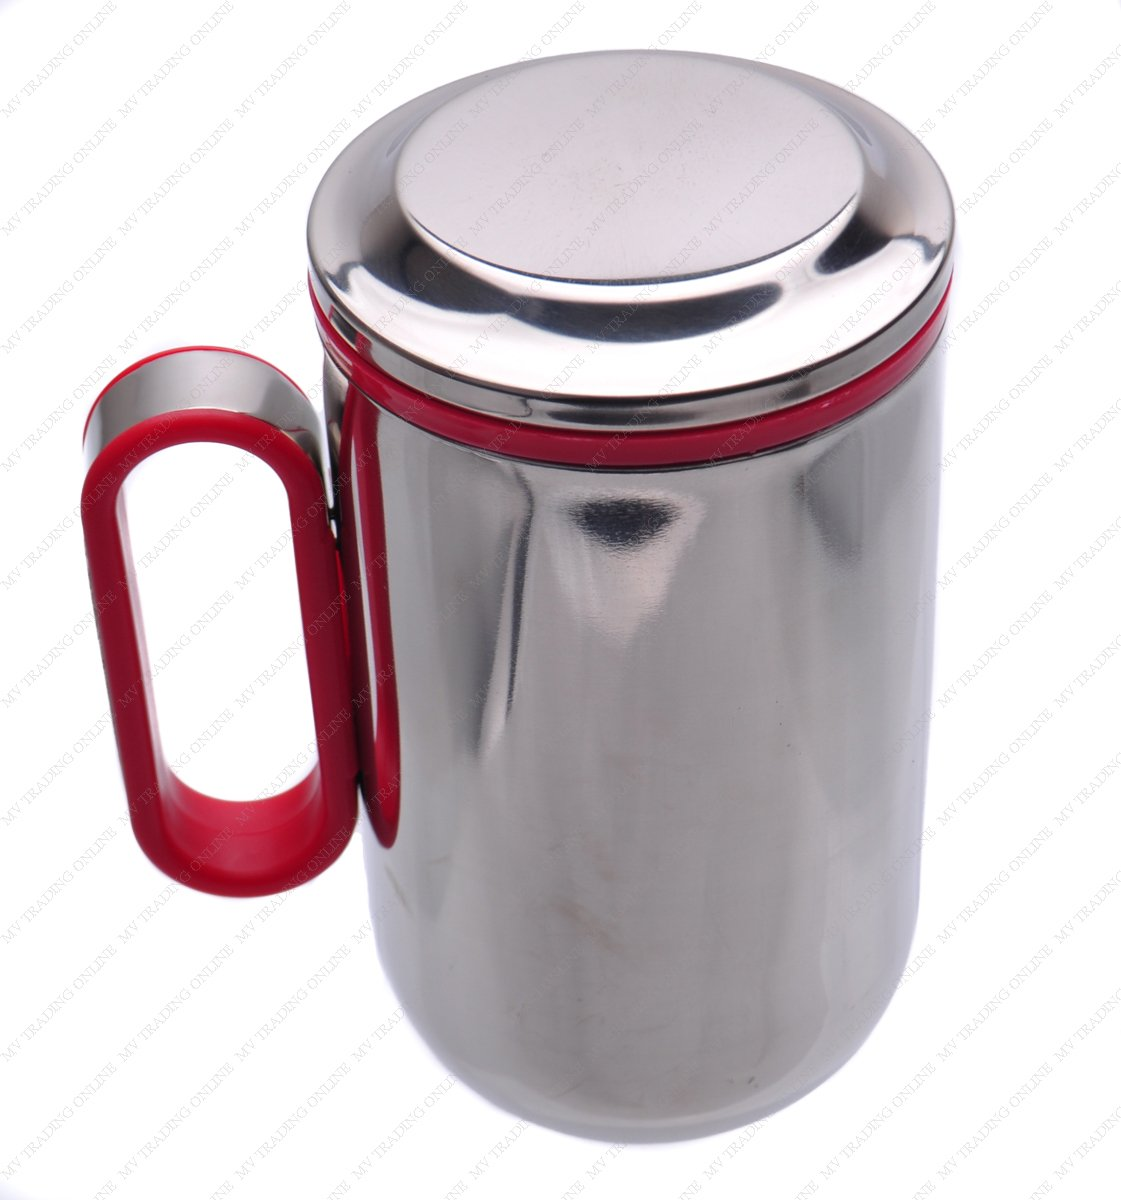 Double Wall Stainless Steel Thermal Coffee Mug/Teacup with Tea Strainer, 16.90-Ounces (500ml)